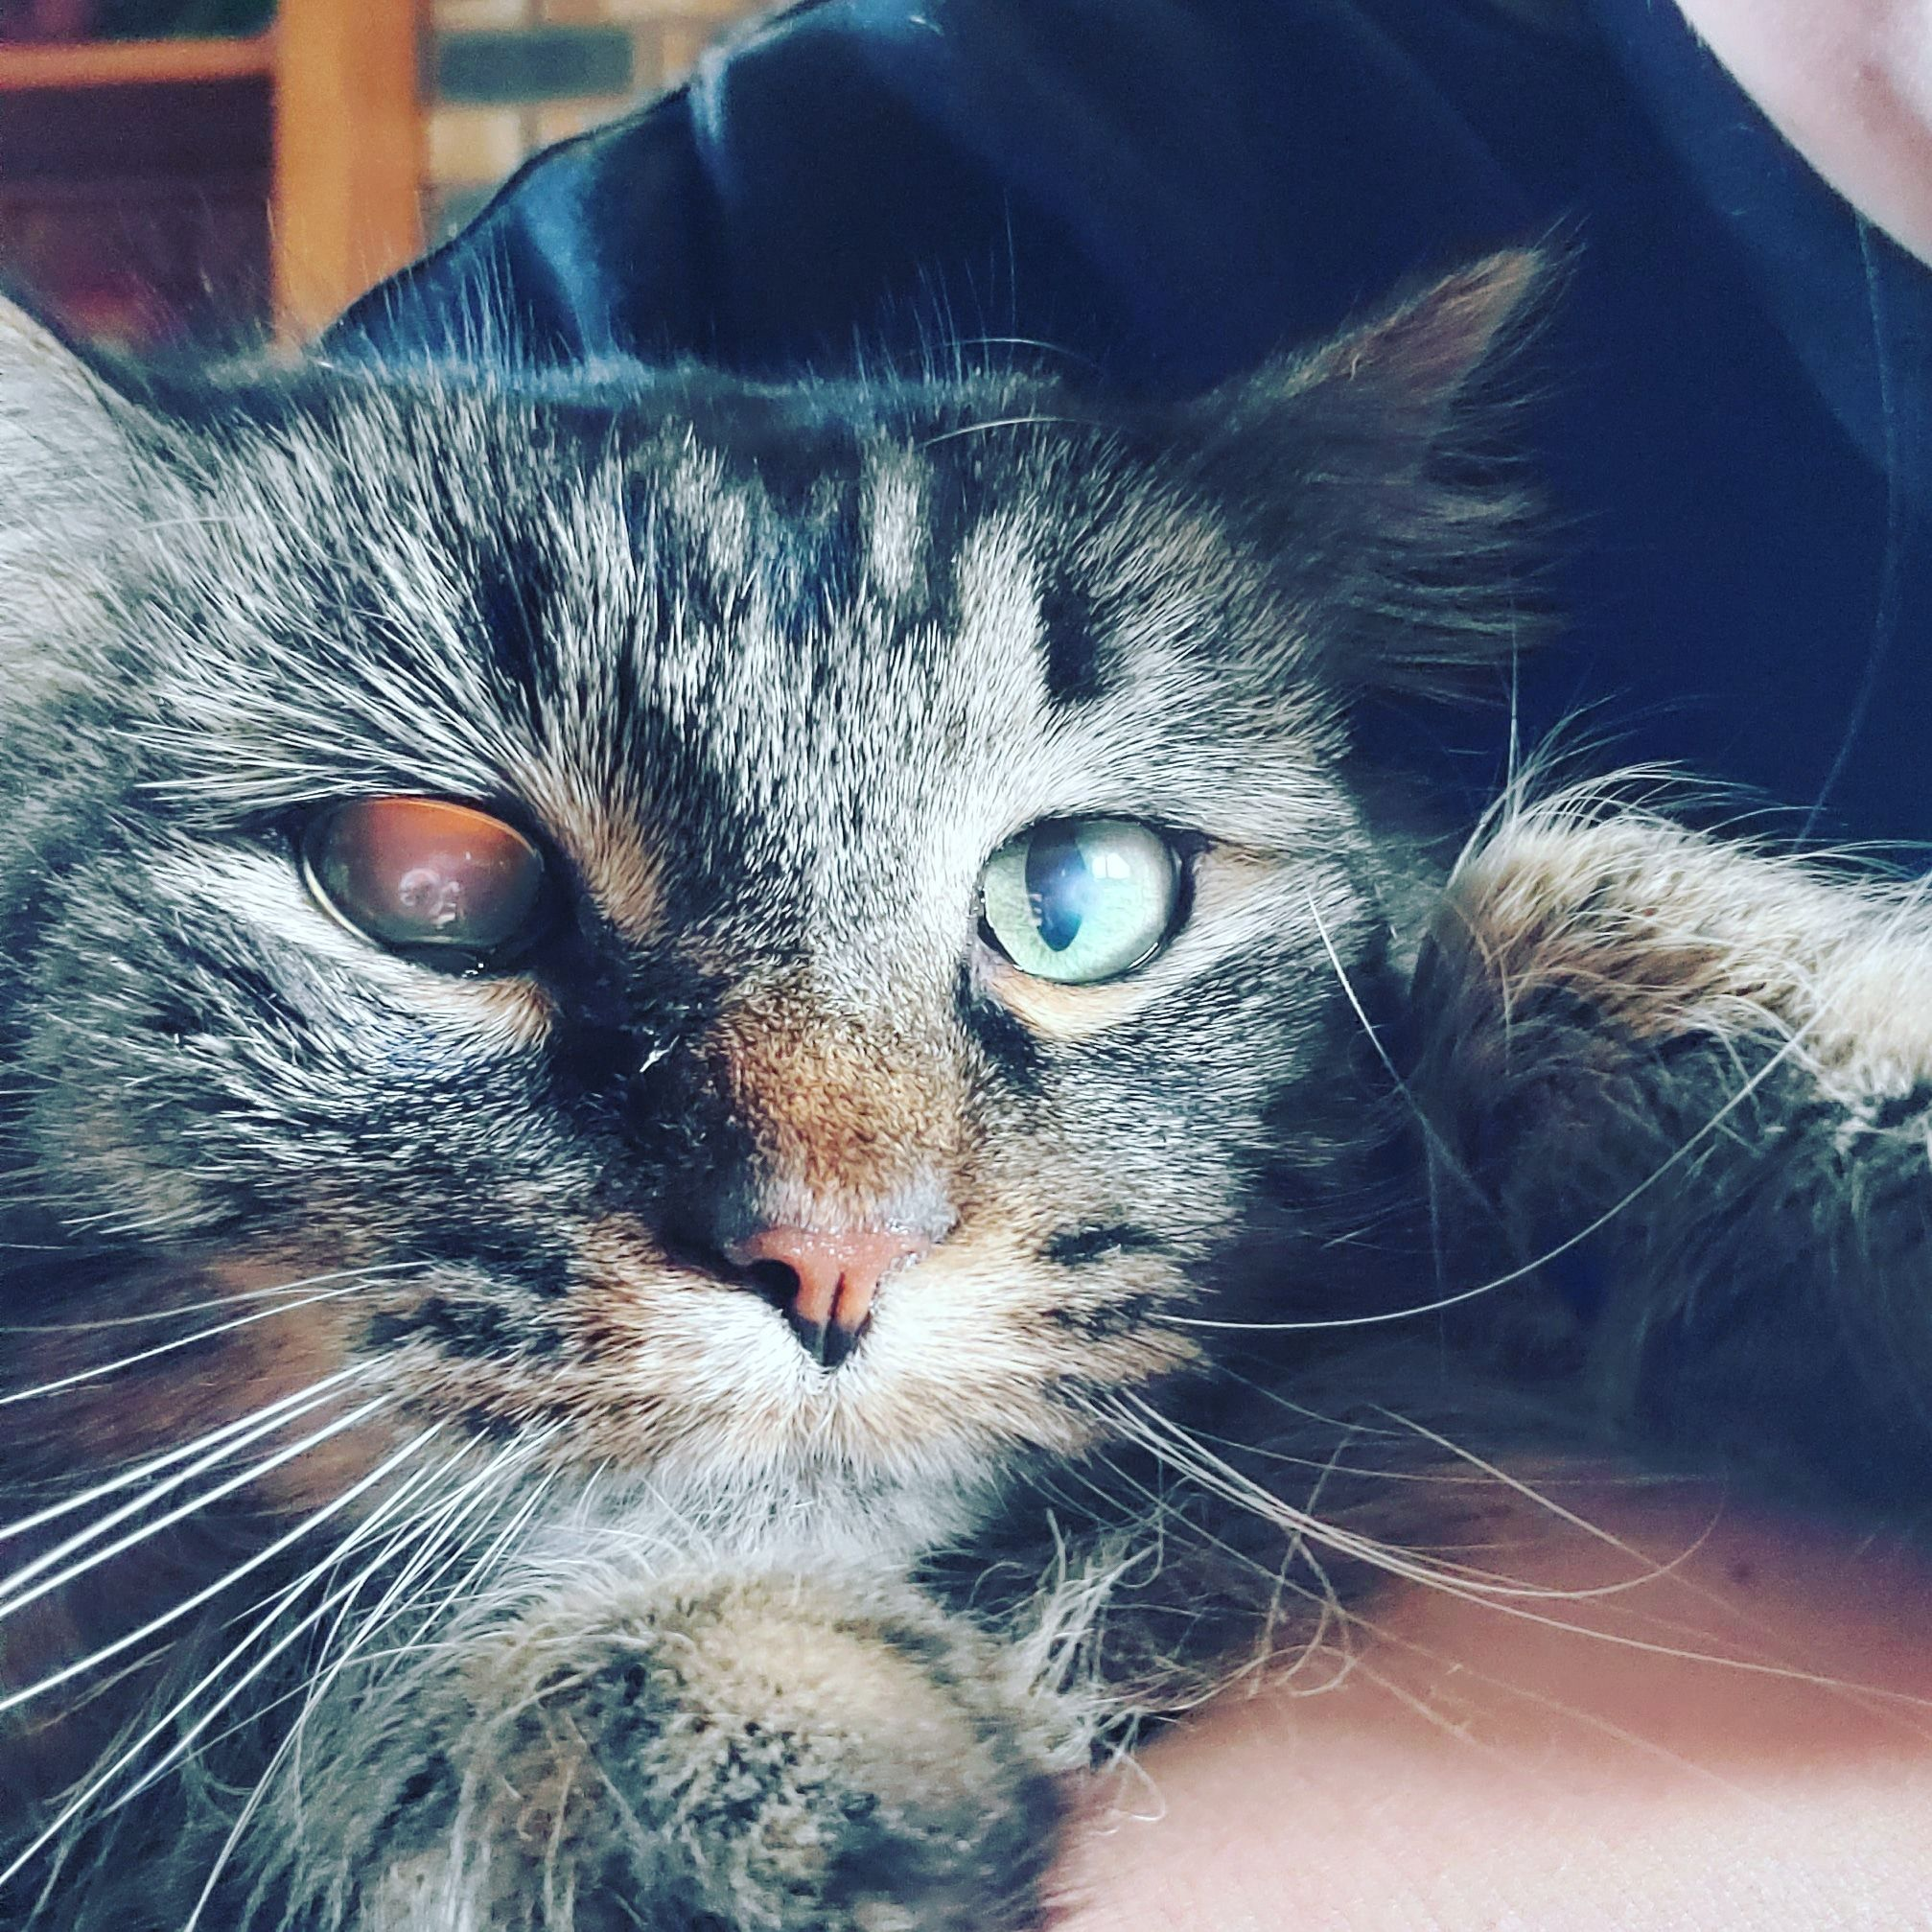 herpetic corneal ulcers in cats